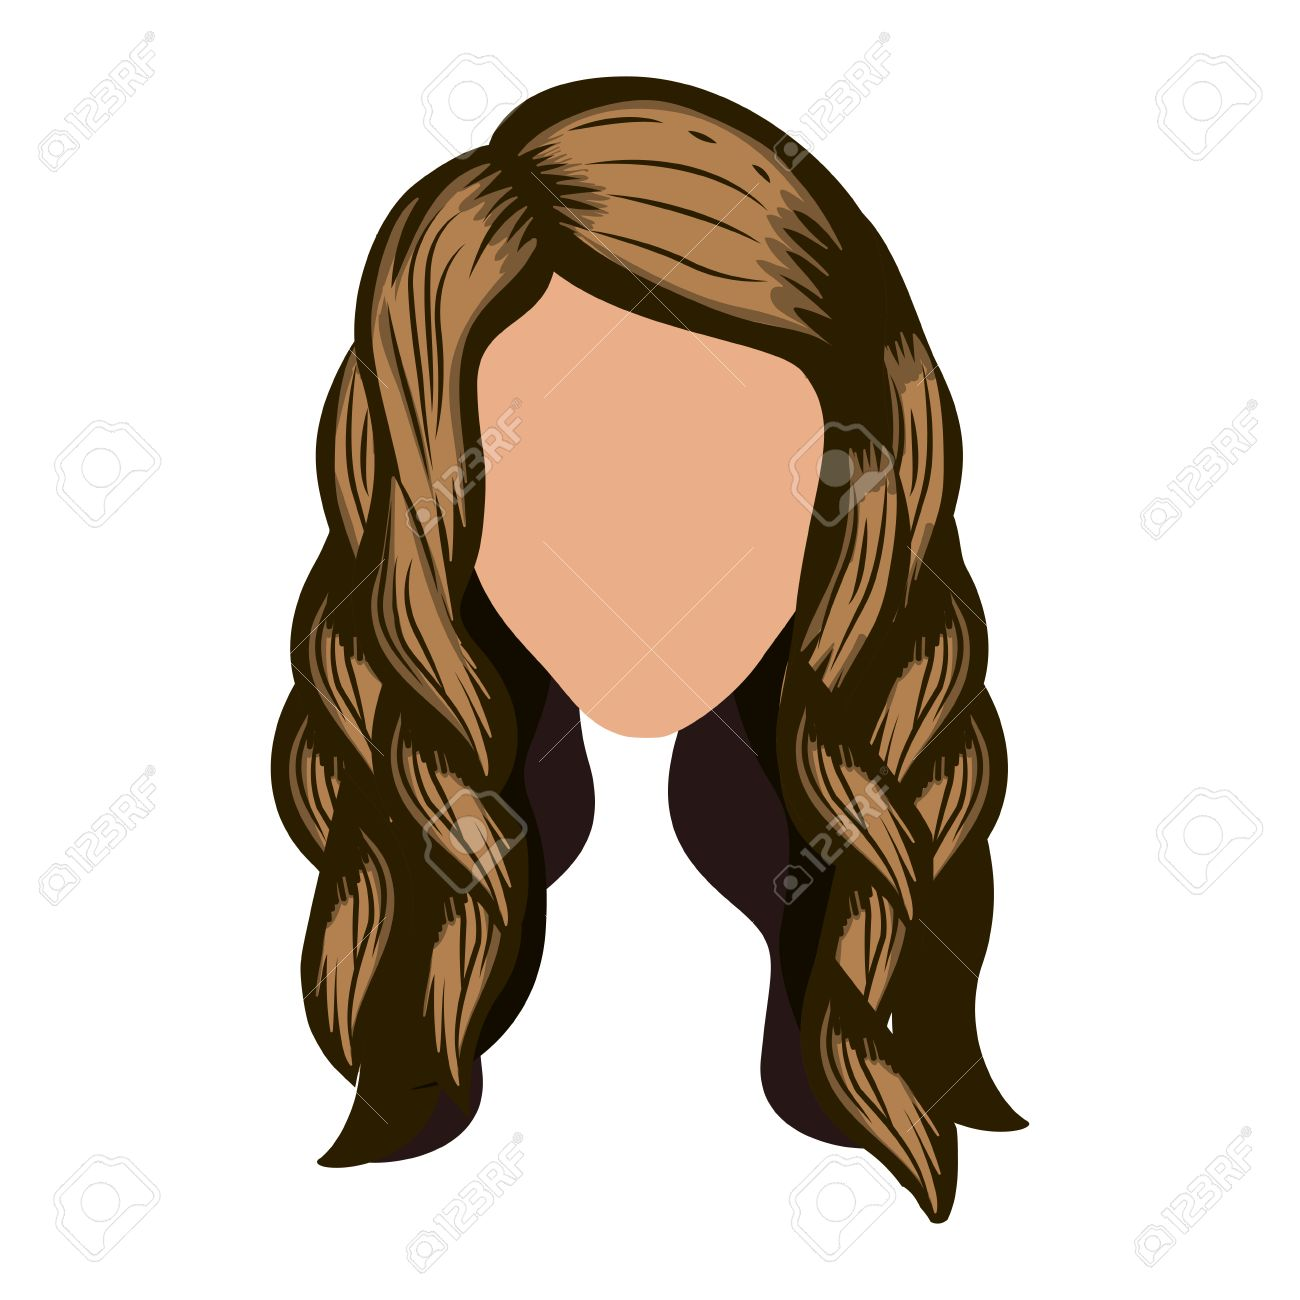 Silhouette Front Face With Wavy Light Brown Hair Vector Illustration